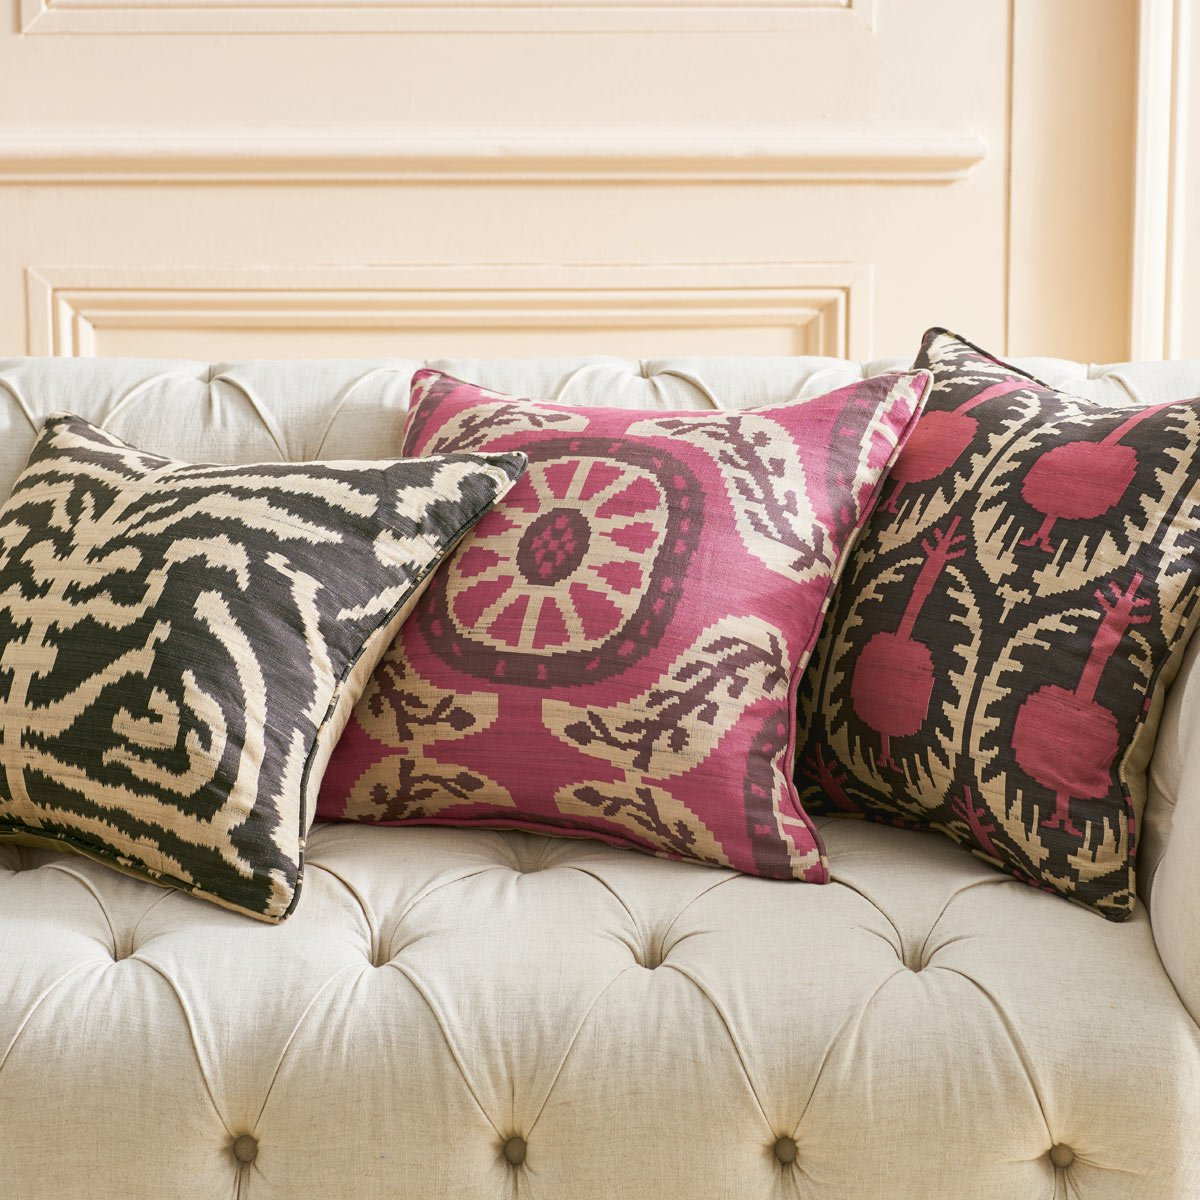 Scatter Cushion Pink Black Traditional Ikat Design